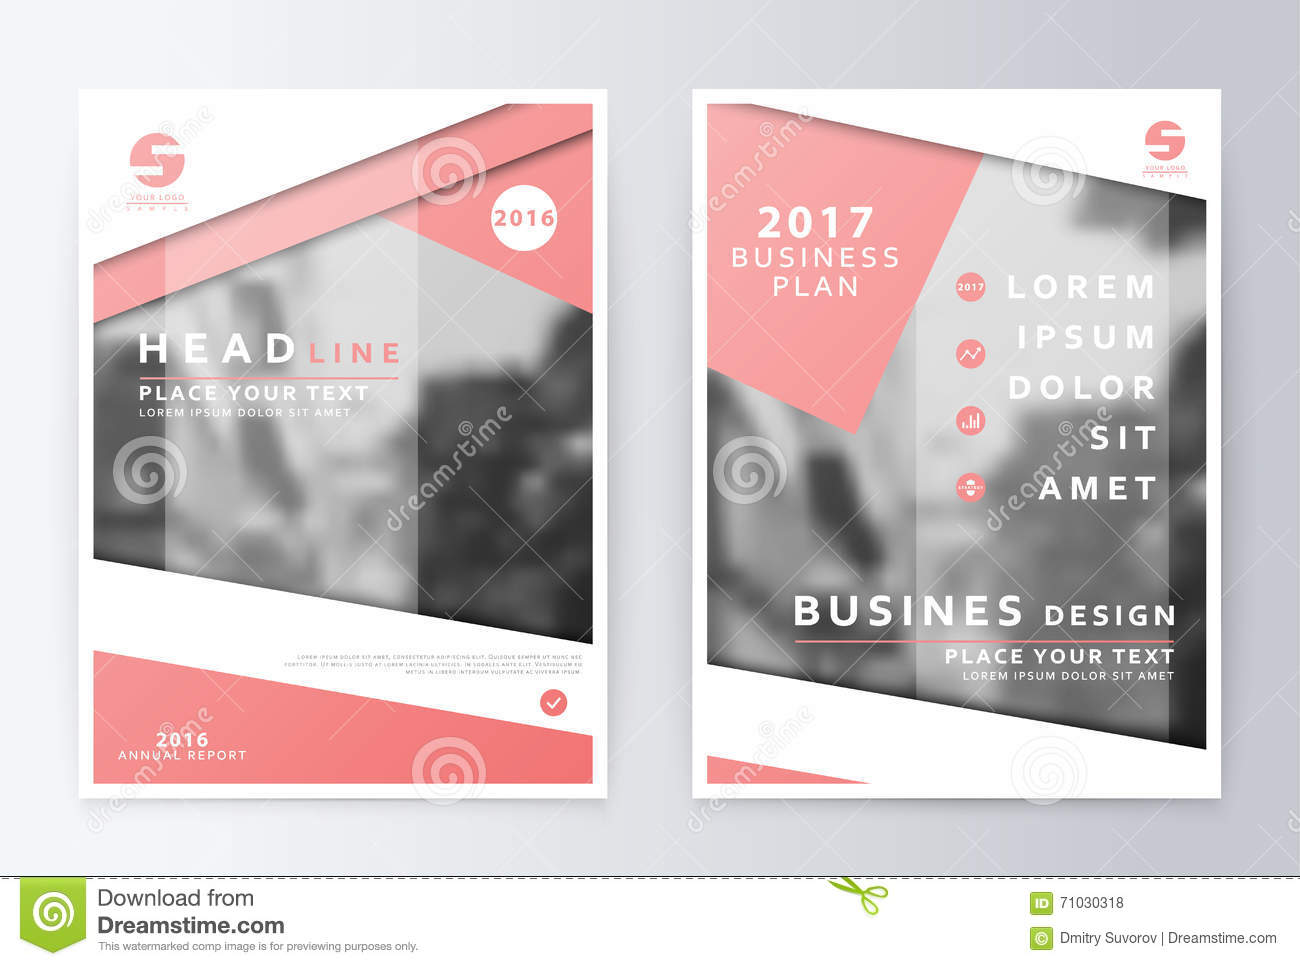 Annual Report Brochure Business Plan Flyer Design Template Stock - Business plan design template